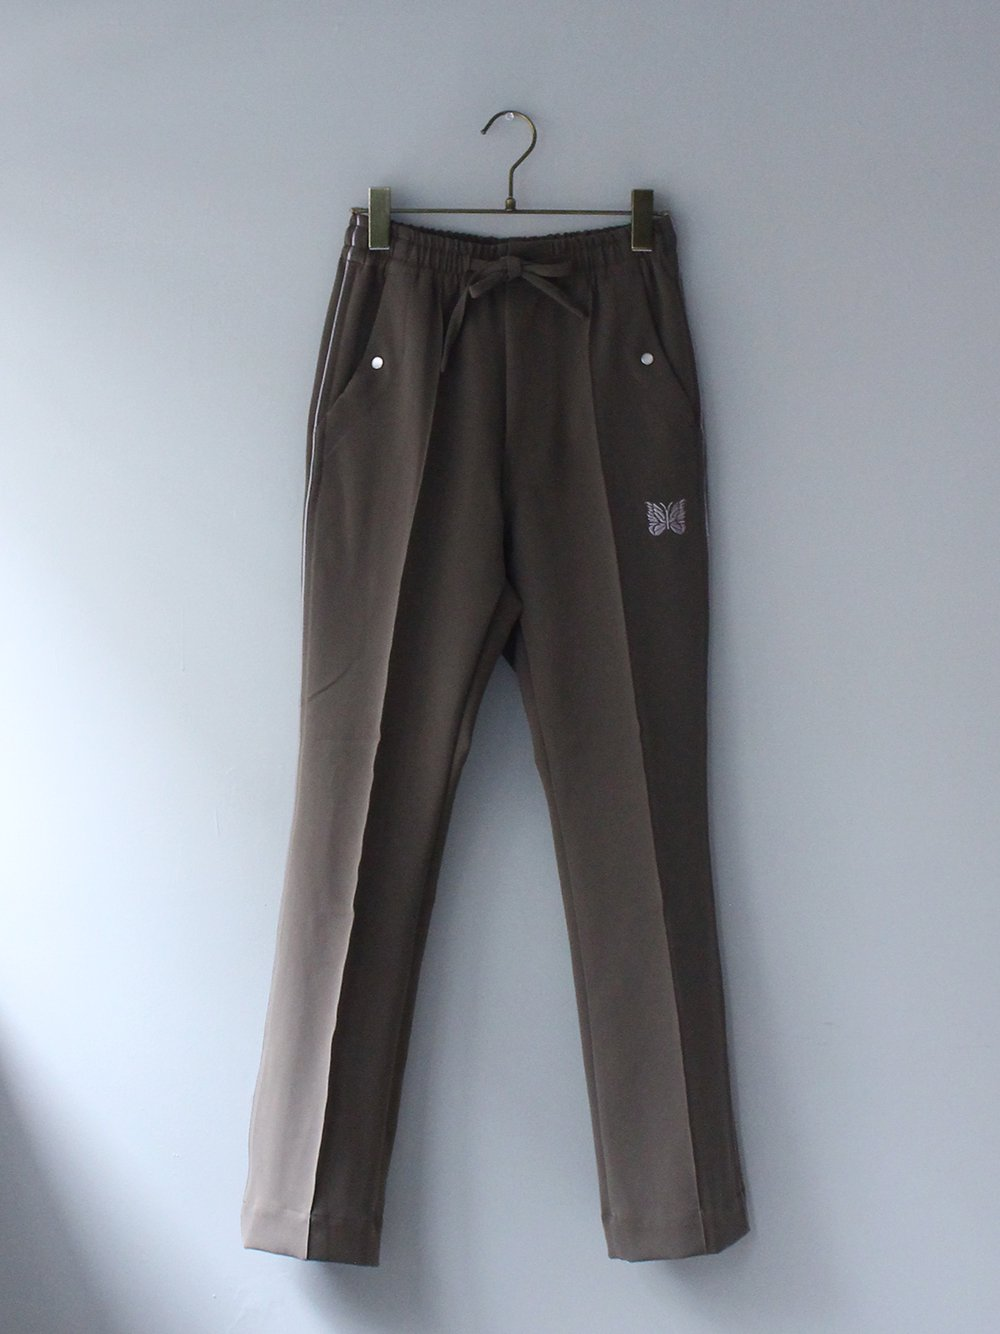 """<img class='new_mark_img1' src='https://img.shop-pro.jp/img/new/icons8.gif' style='border:none;display:inline;margin:0px;padding:0px;width:auto;' />Needles """" Piping Cowboy Pant - Pe/Pu Double Cloth (olive)"""""""